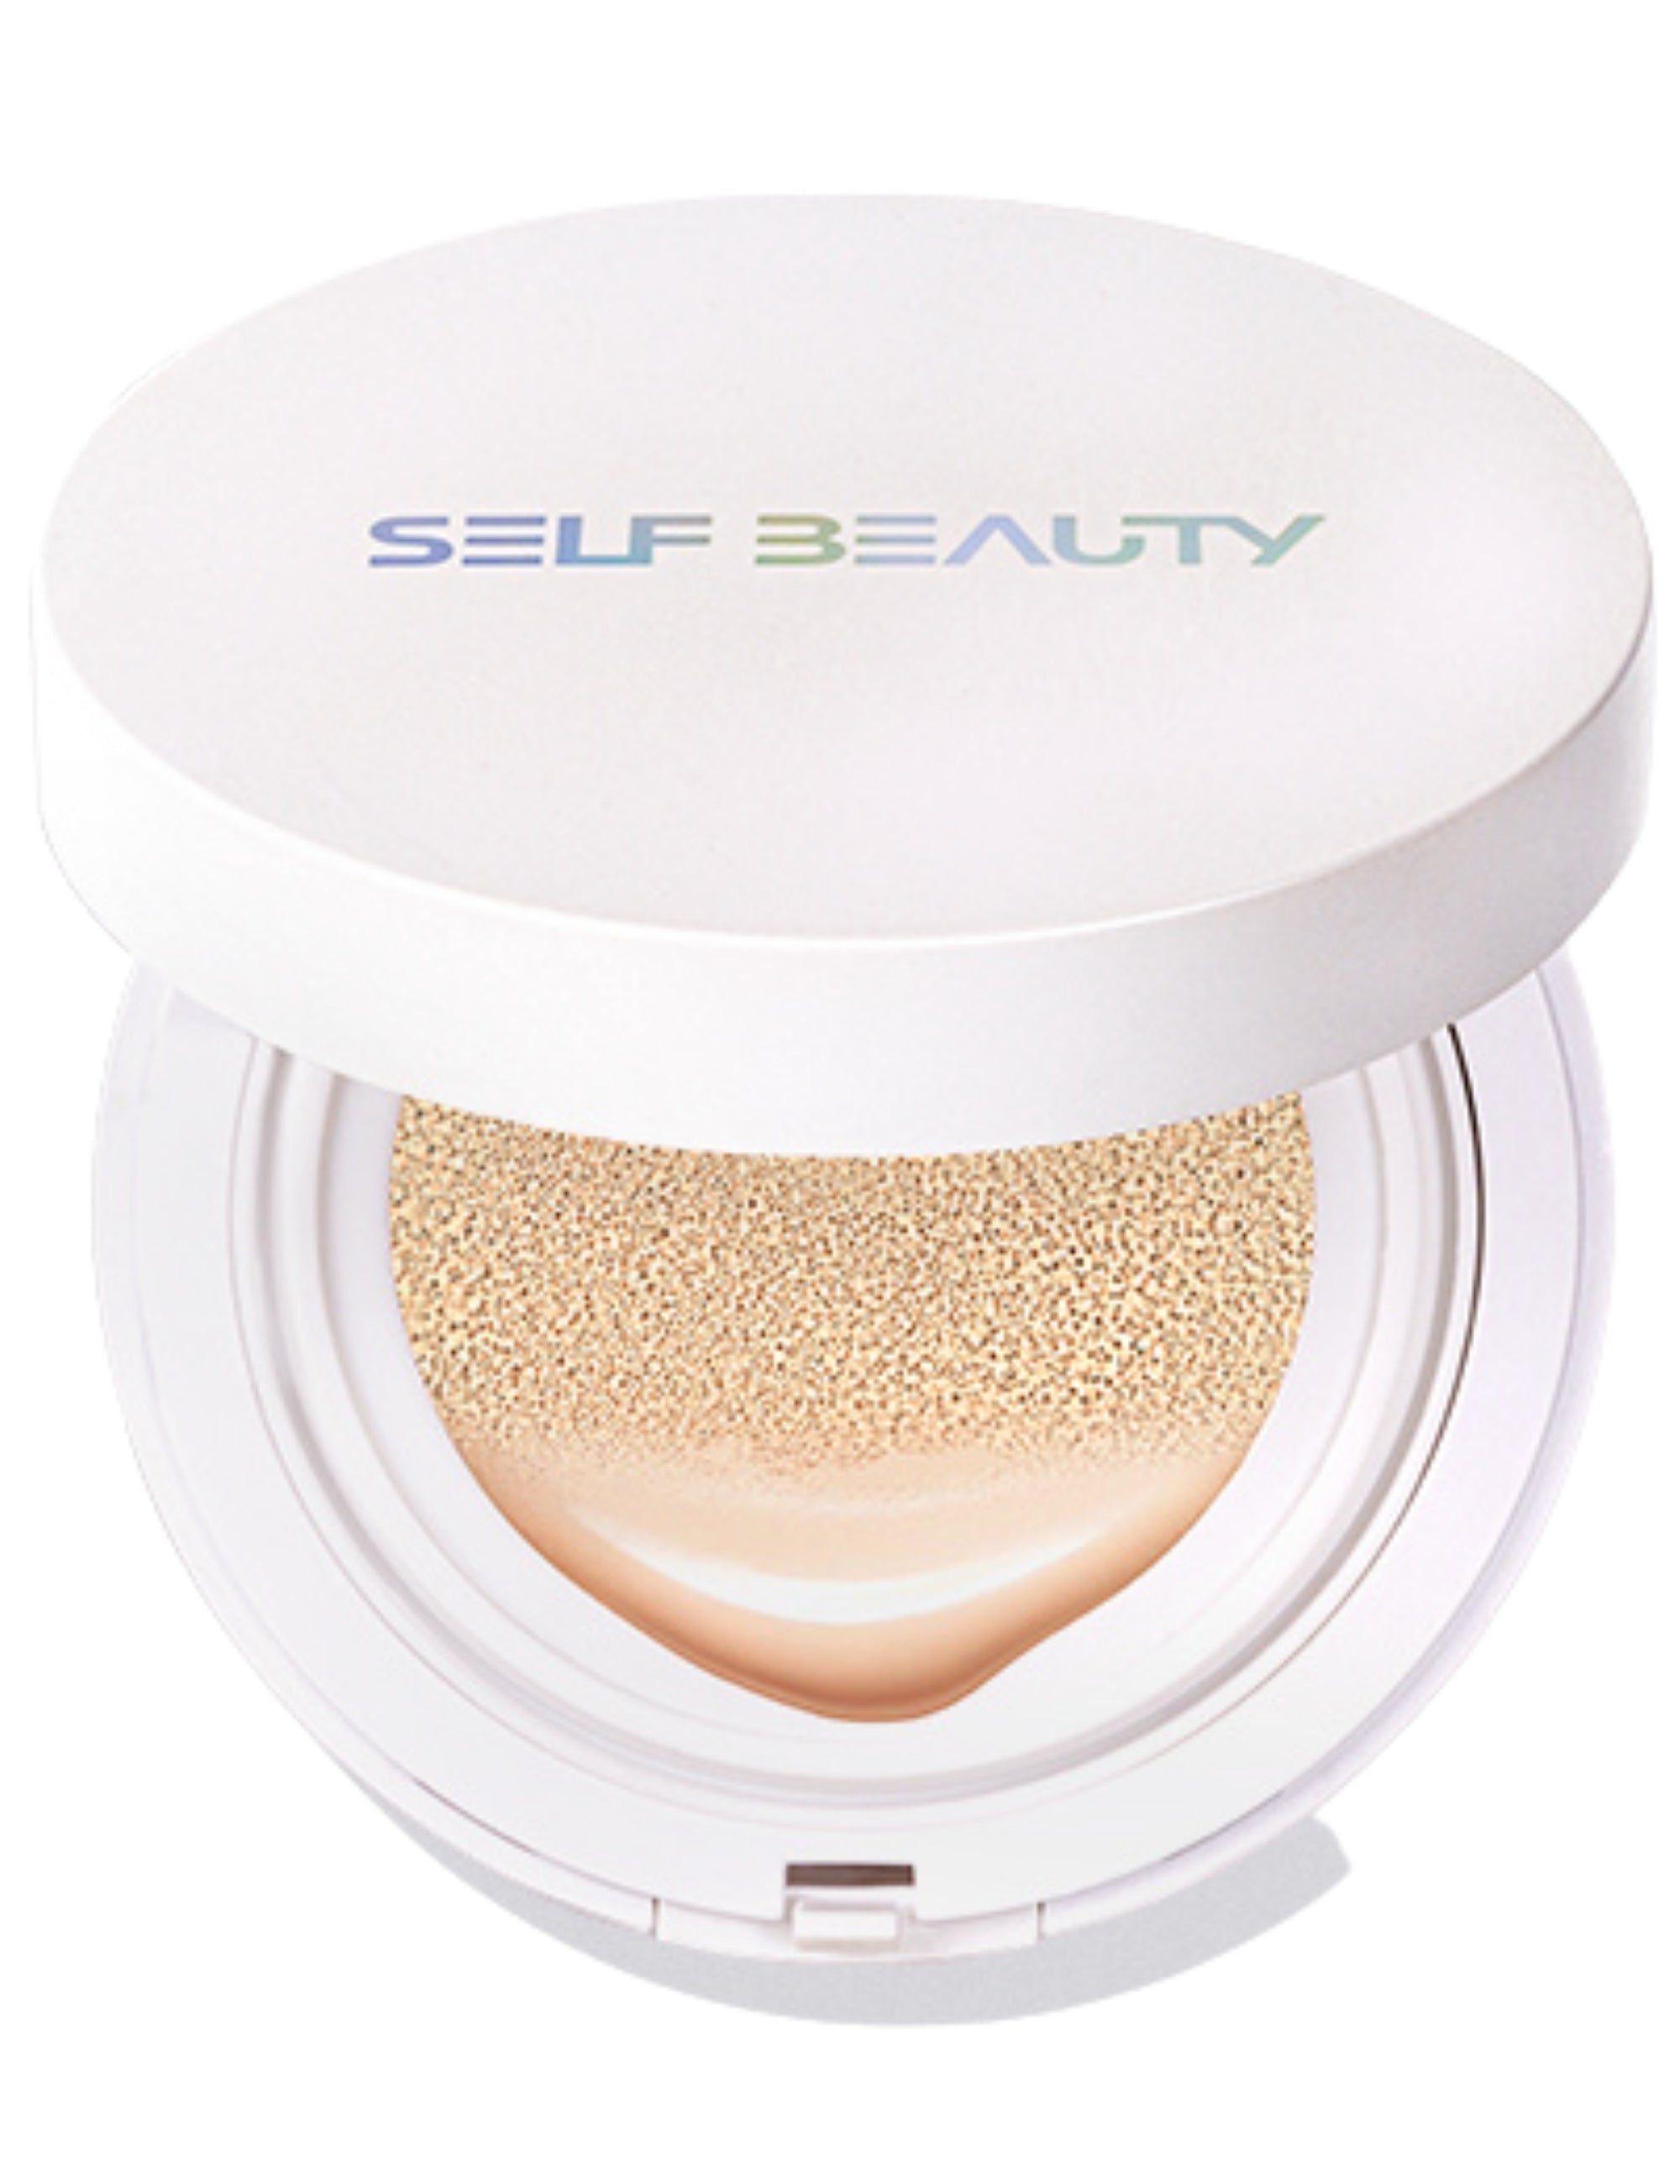 UNICONIC Velvet Matte Air Cushion Foundation UV SPF47, PA++ 0.53oz, 15g (2 Shades) - SELF BEAUTY